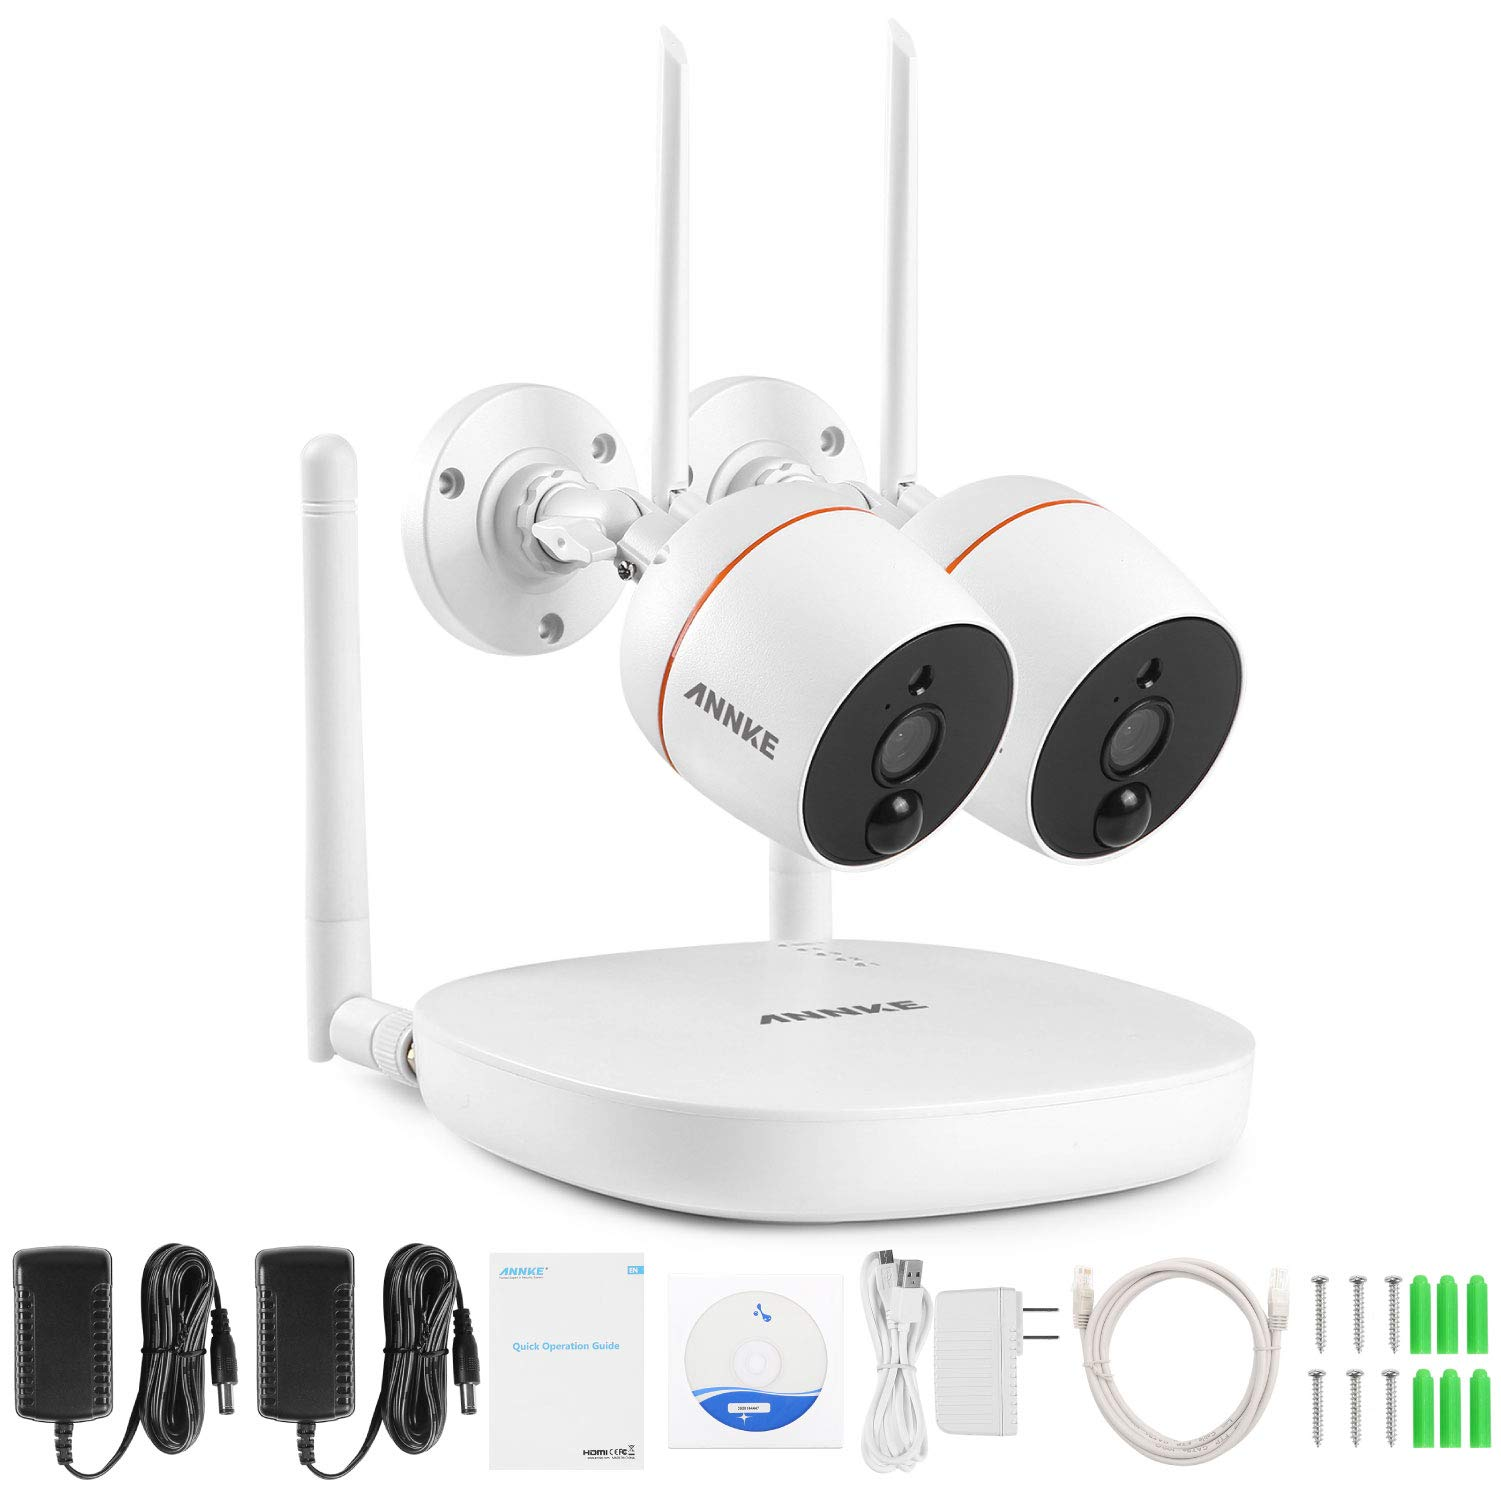 ANNKE Wireless IP Camera, 1080P 2 Pack Home Security WiFi Cameras, Plug and Play, PIR Motion Detection, Two-Way Audio, IP66 Weatherproof Indoor/Outdoor CCTV Camera, Support UP to 128GB TF Card by ANNKE (Image #9)